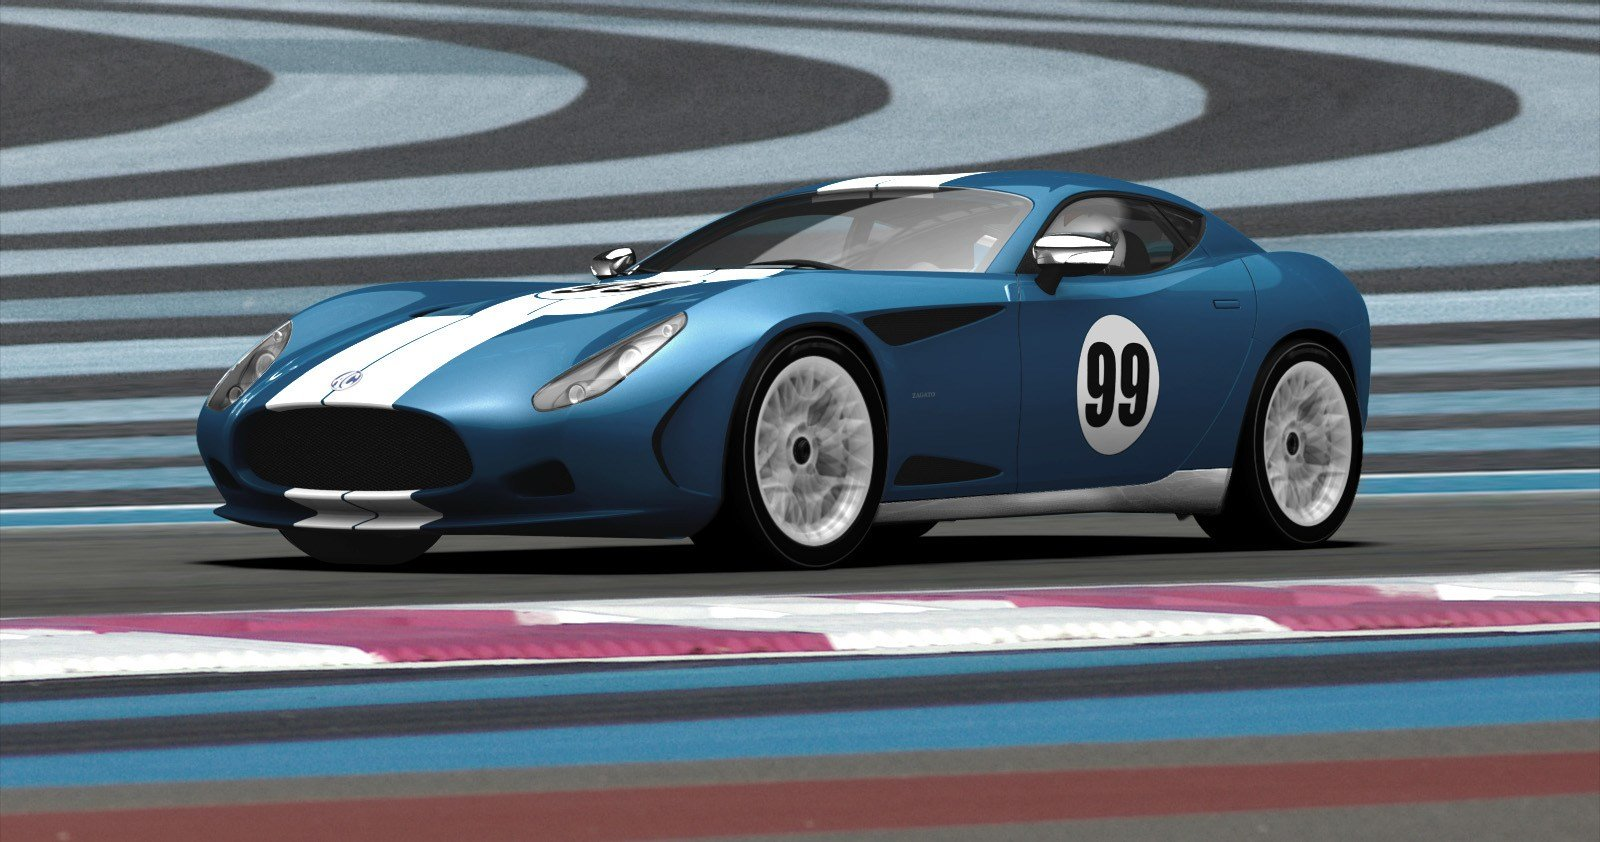 New The Ac 378 Gt Zagato – Formerly The Perana Z One On This Month